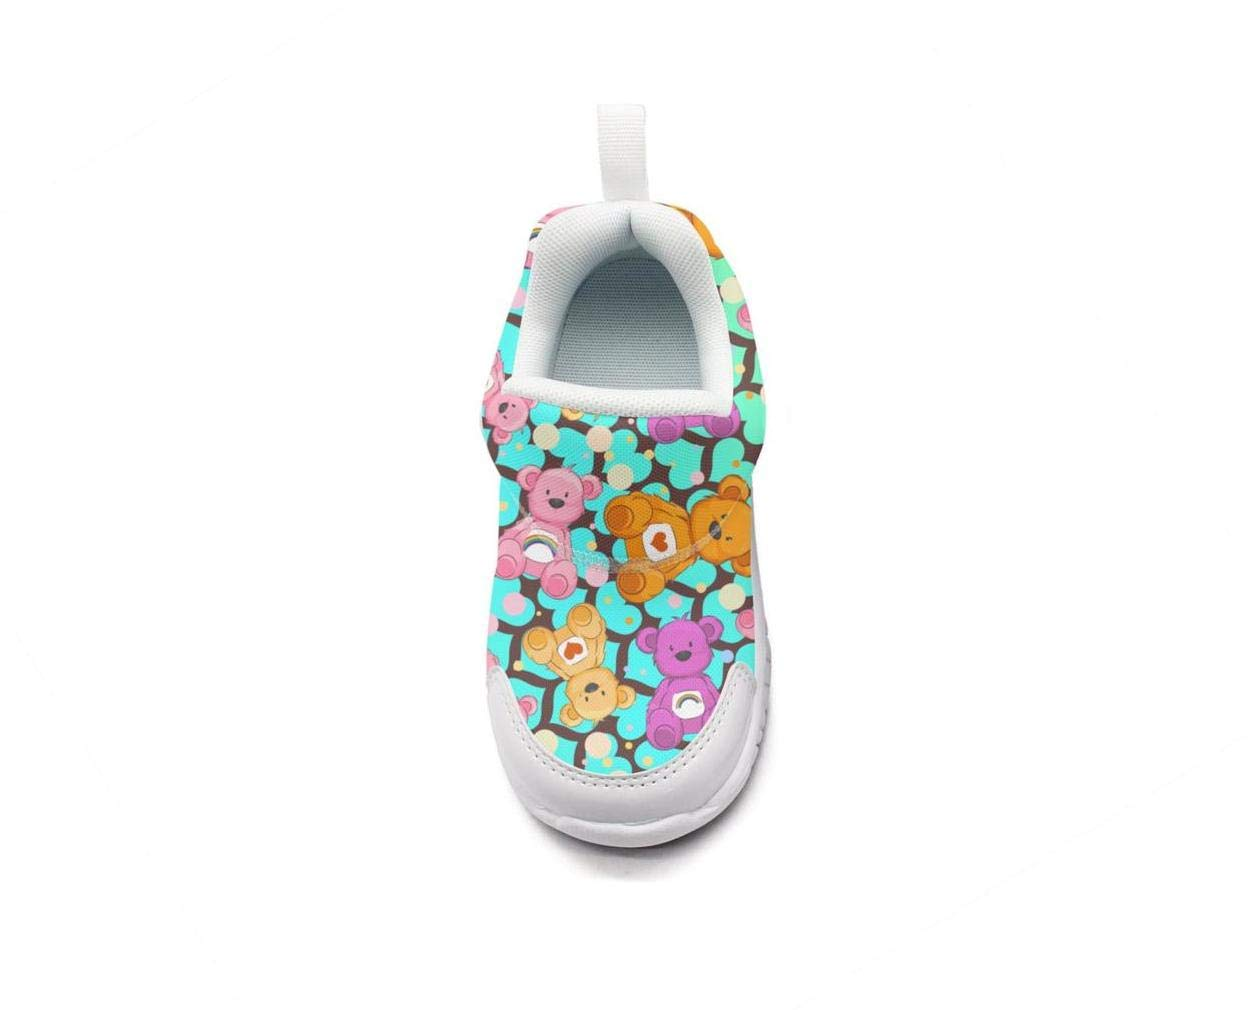 ONEYUAN Children Sugar Bear Rainbow Color Kid Casual Lightweight Sport Shoes Sneakers Walking Athletic Shoes